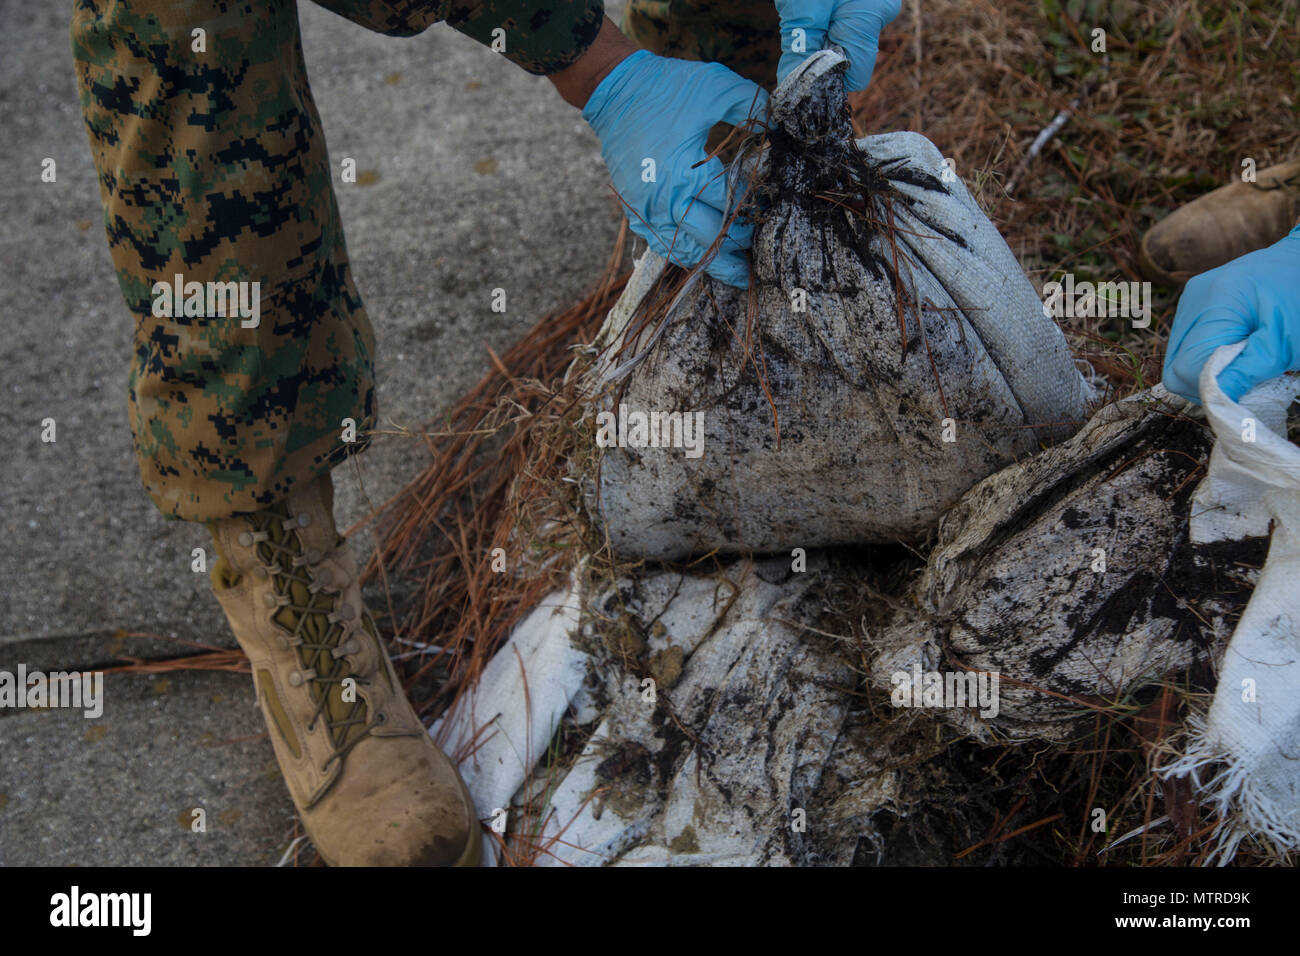 U.S. Marines with Headquarters and Support Battalion, Marine Corps Installation East, remove torn sandbags from the ground, Camp Lejeune, N.C., Jan. 12, 2017. The clean sweep was conducted to ensure a good state of cleanliness is being maintained within the units' respected facilities. (U.S. Marine Corps photo by Lance Cpl. Austin Livingston) - Stock Image